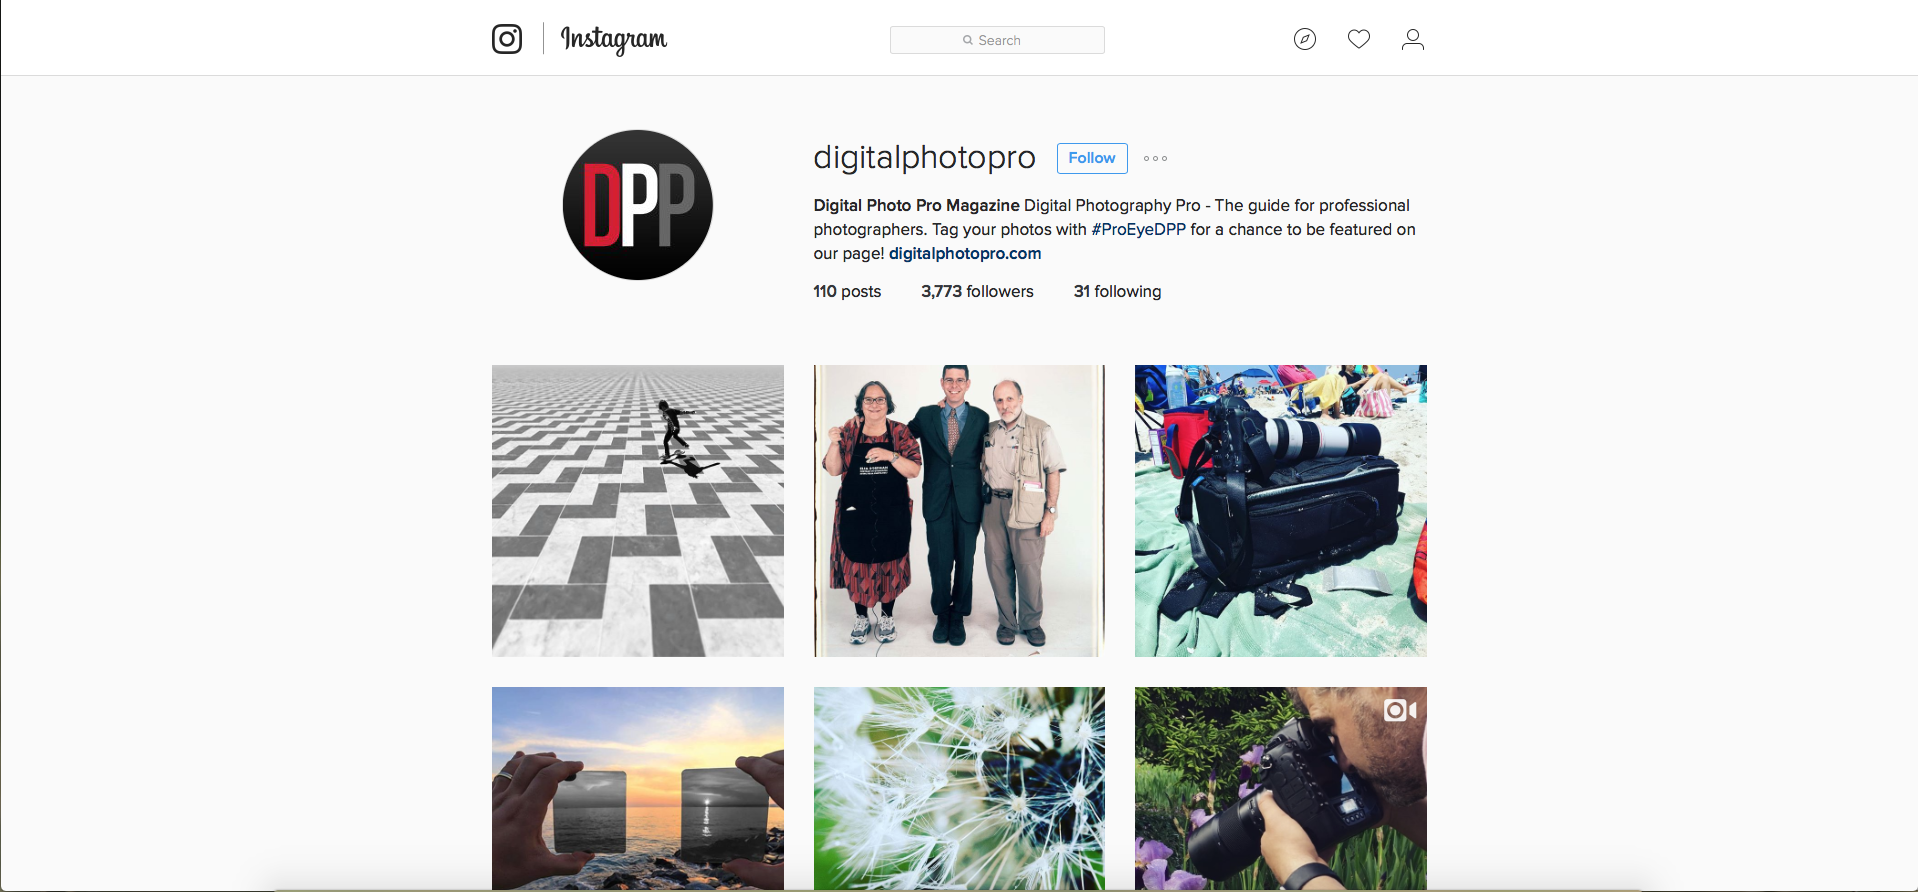 DPP Instagram Home